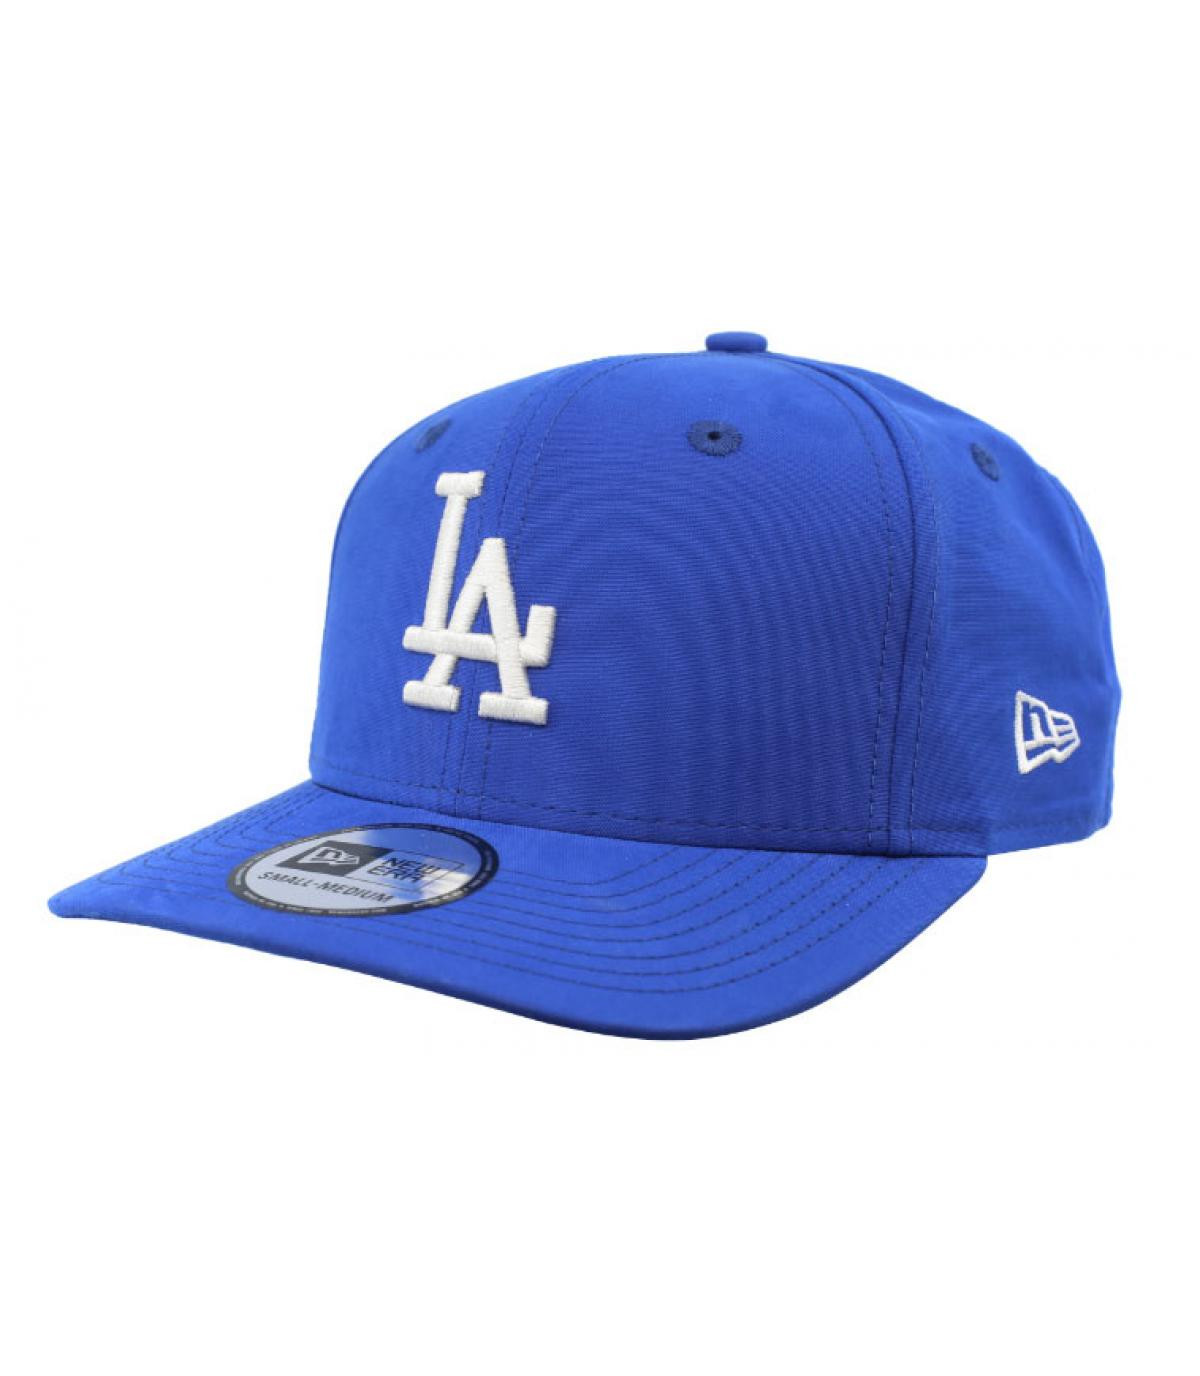 Details Light Weight nylon PC9Fifty LA royal - afbeeling 2